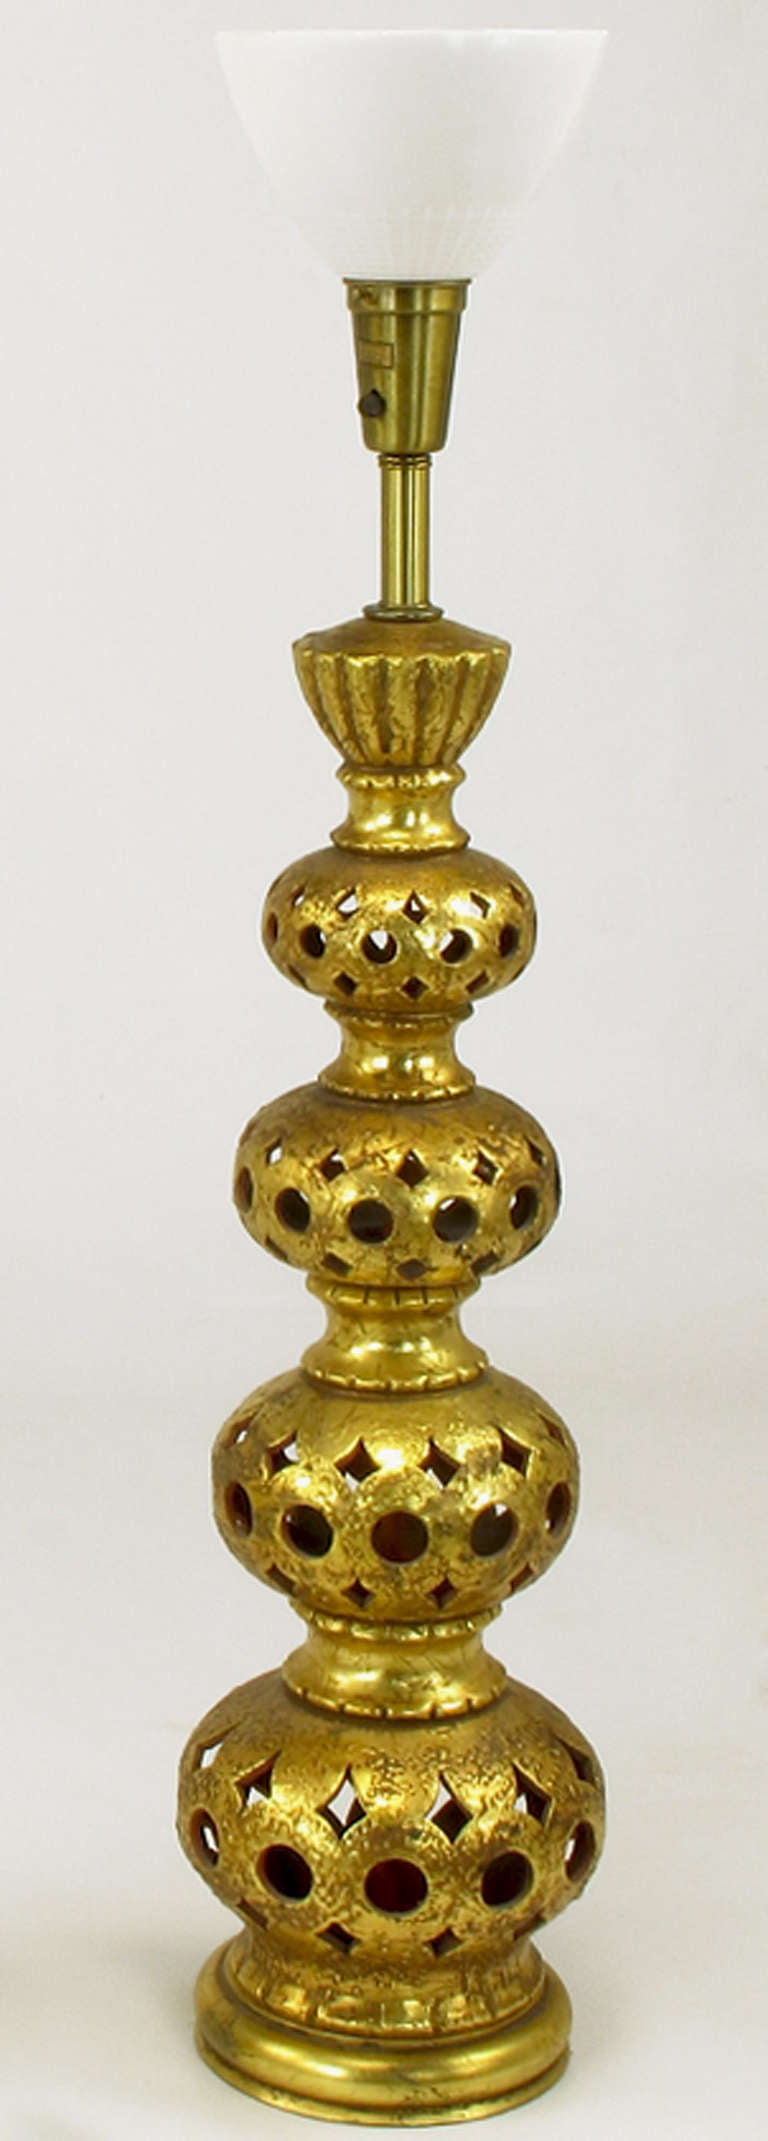 Mid-20th Century Pair of Nardi Studios Tall Pierced and Gilt Quadruple Gourd Ceramic Table Lamps For Sale